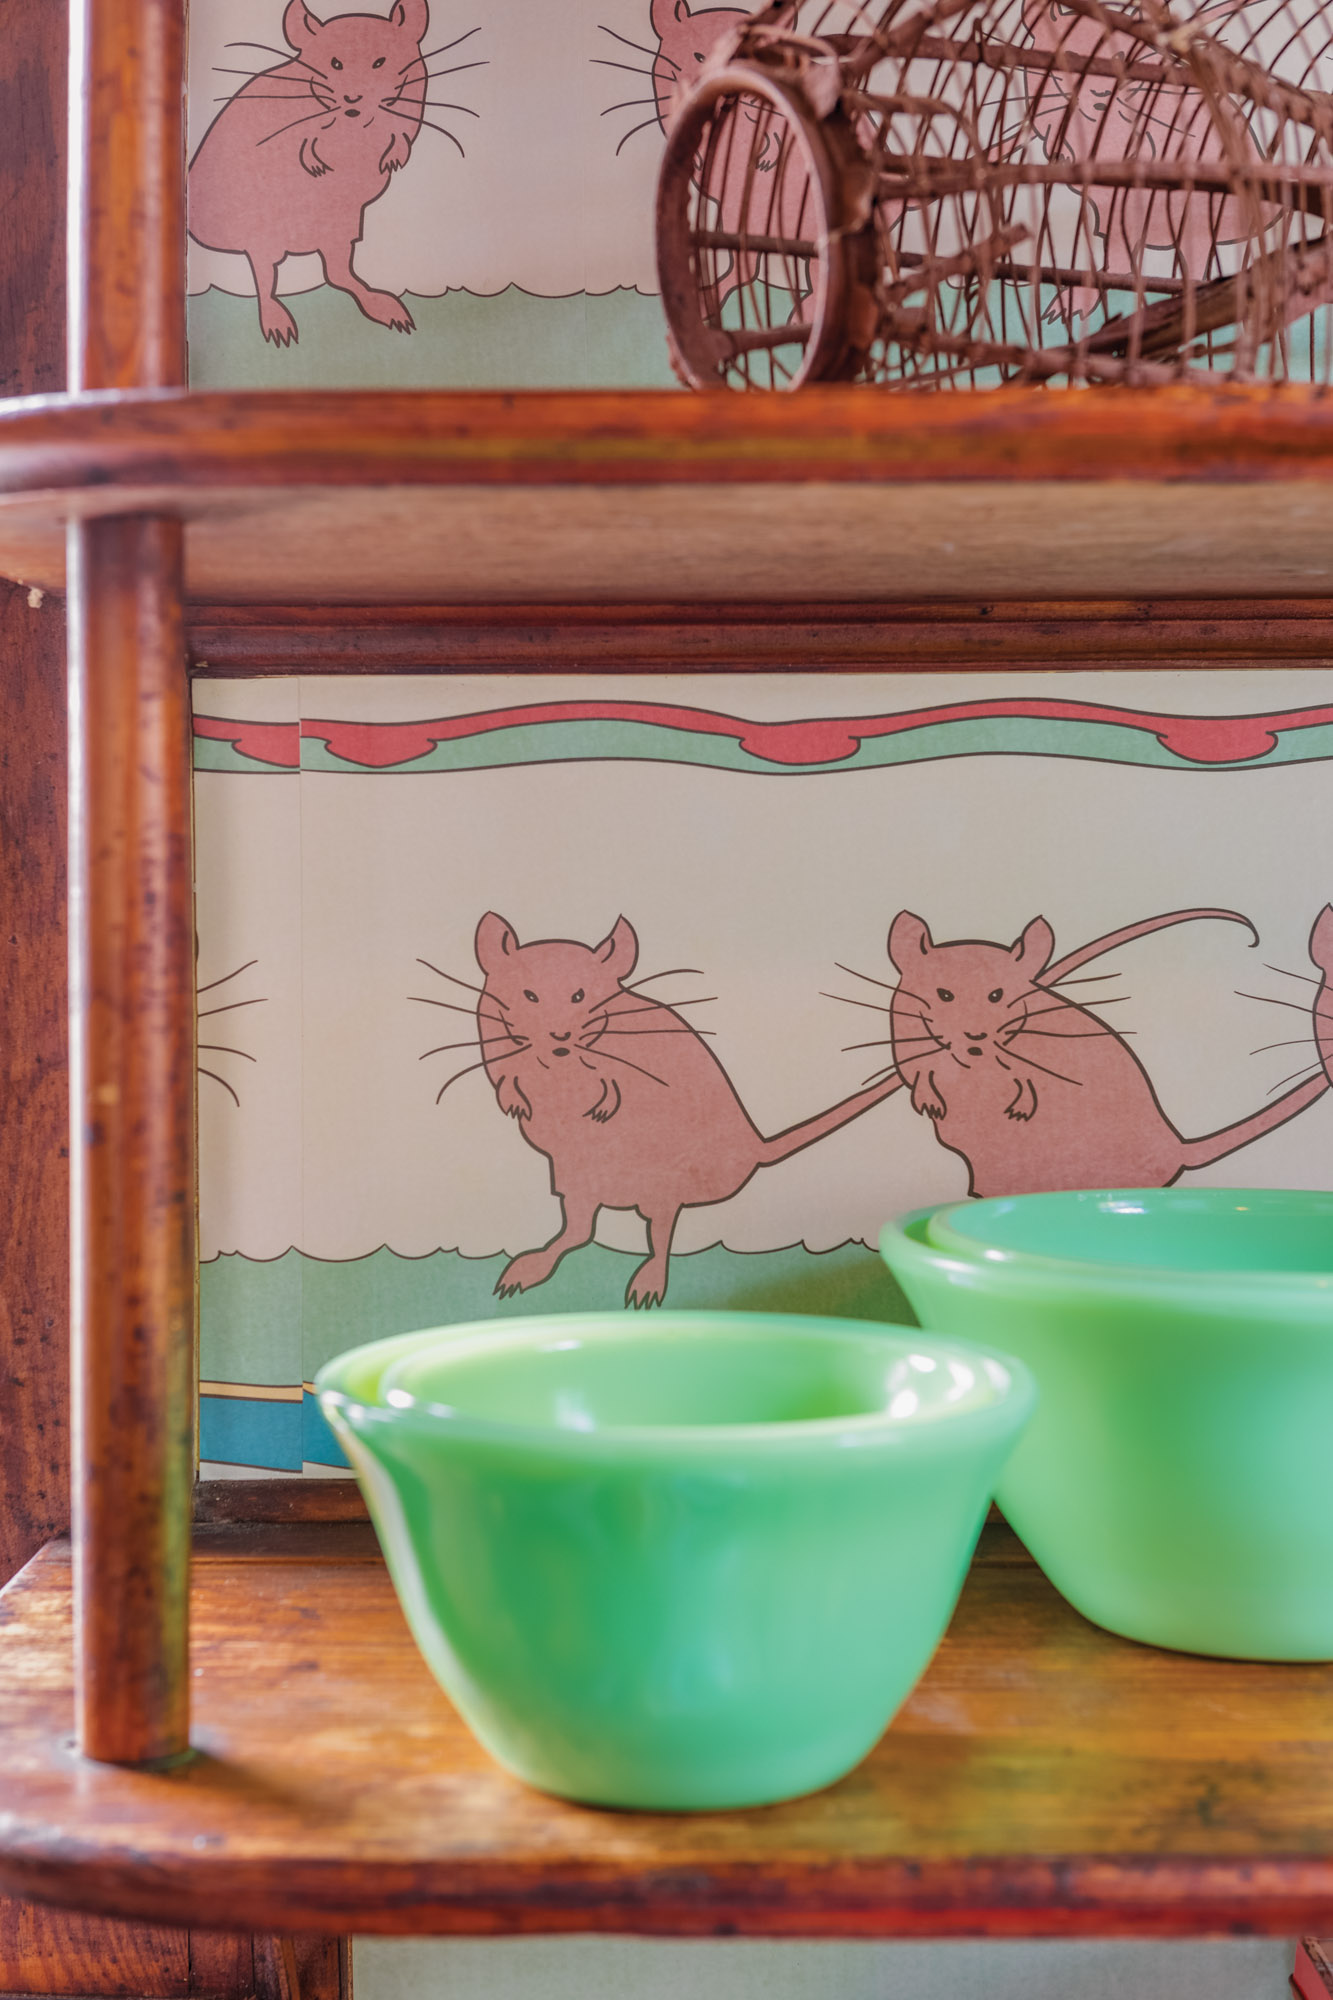 The 'Dancing Mice' paper is a new adaptation of a period design, by David Berman for Trustworth Studios.